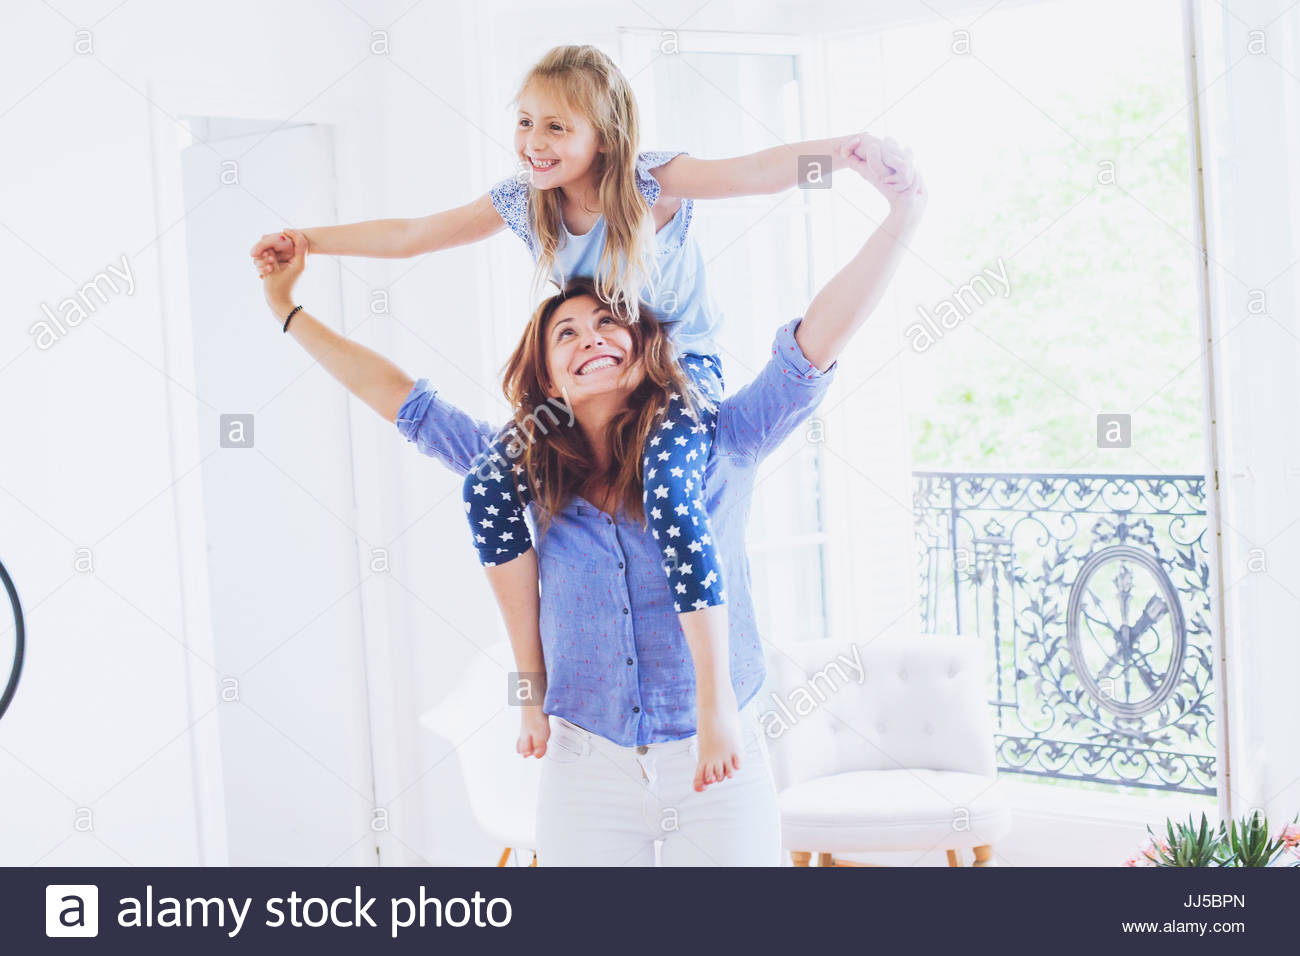 mother and daughter having fun together at home, smiling caucasian family portrait - Stock Image